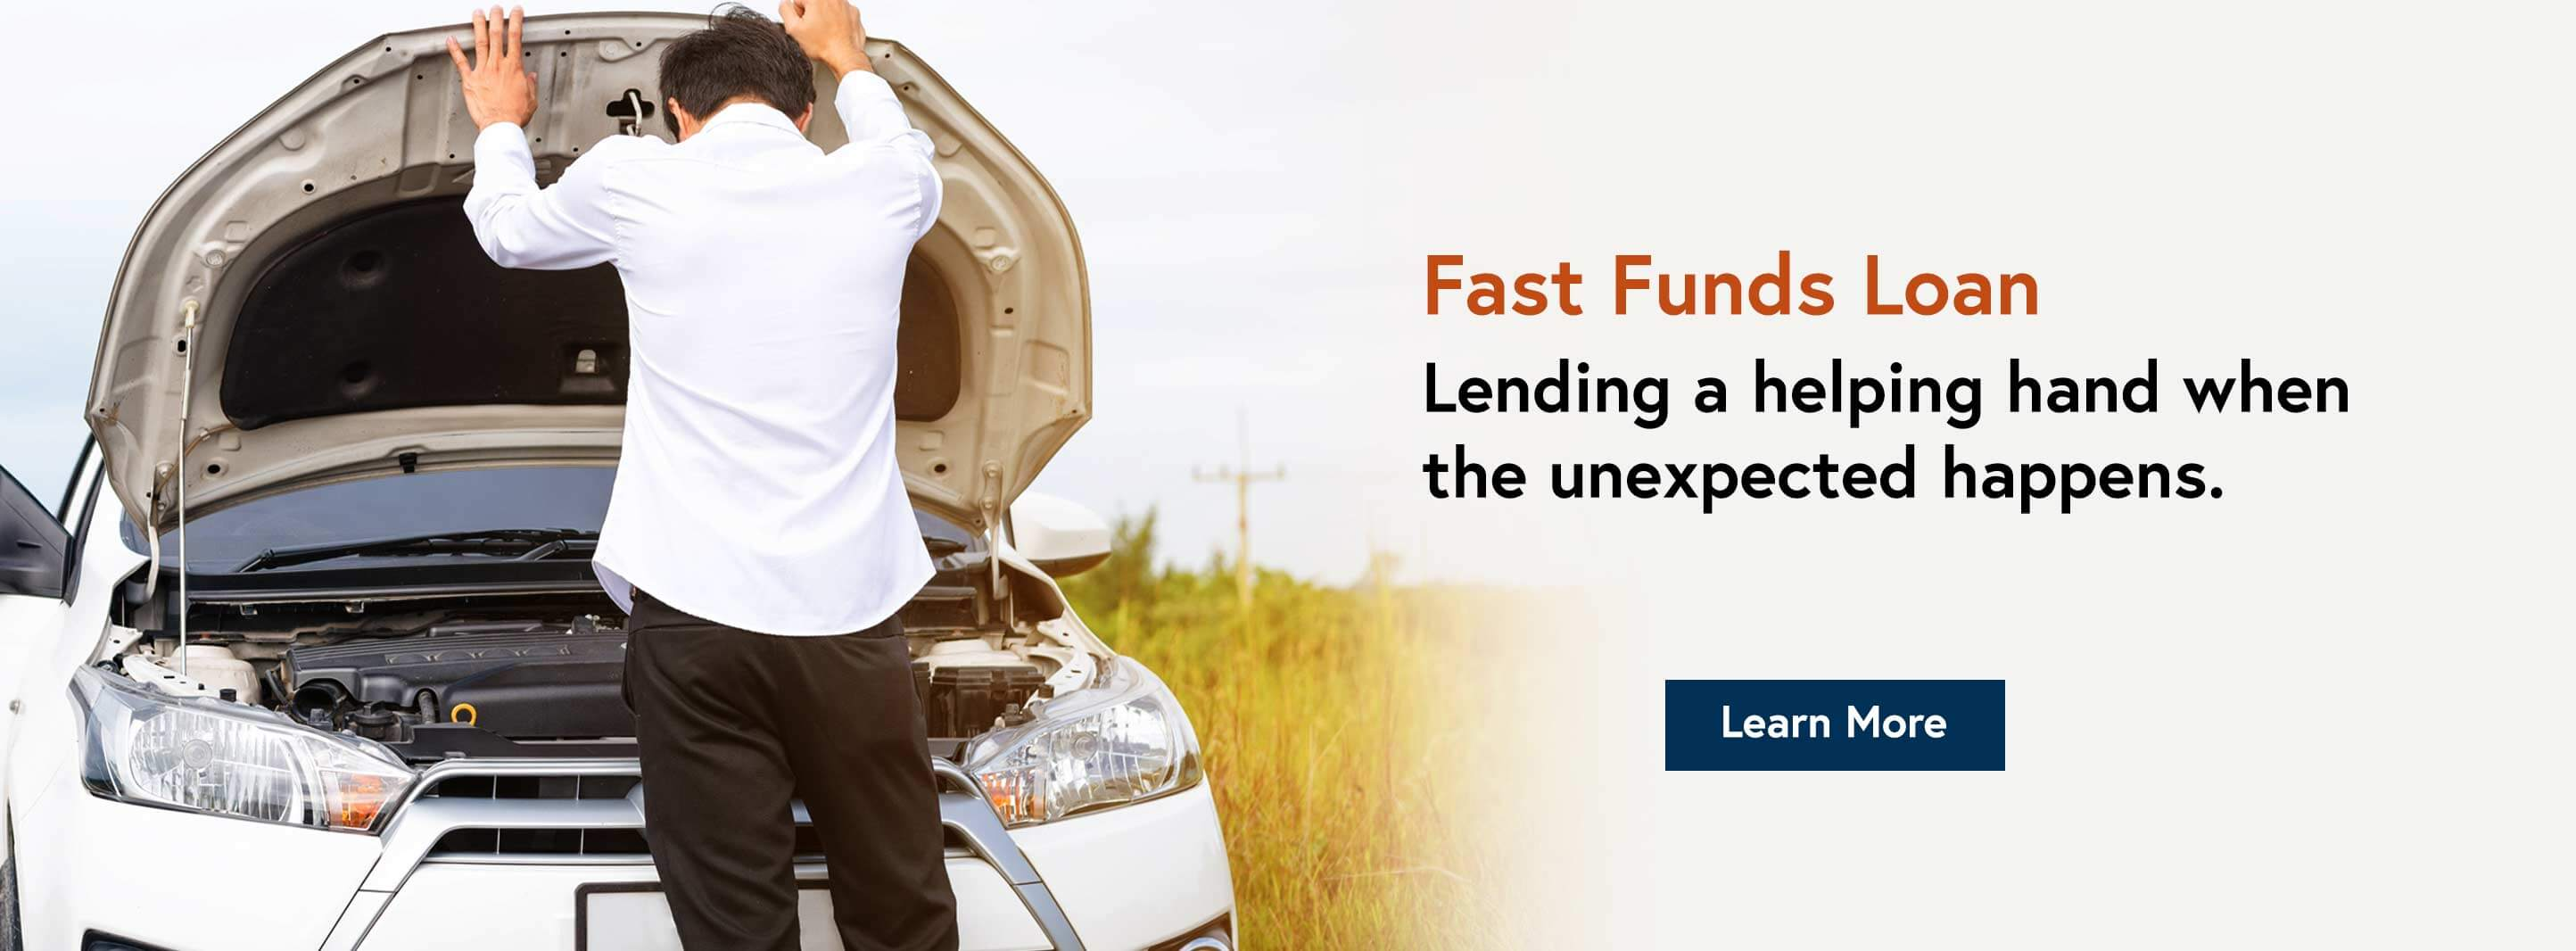 Fast Funds Loan. Lending a helping hand when the unexpected happens. Learn More.